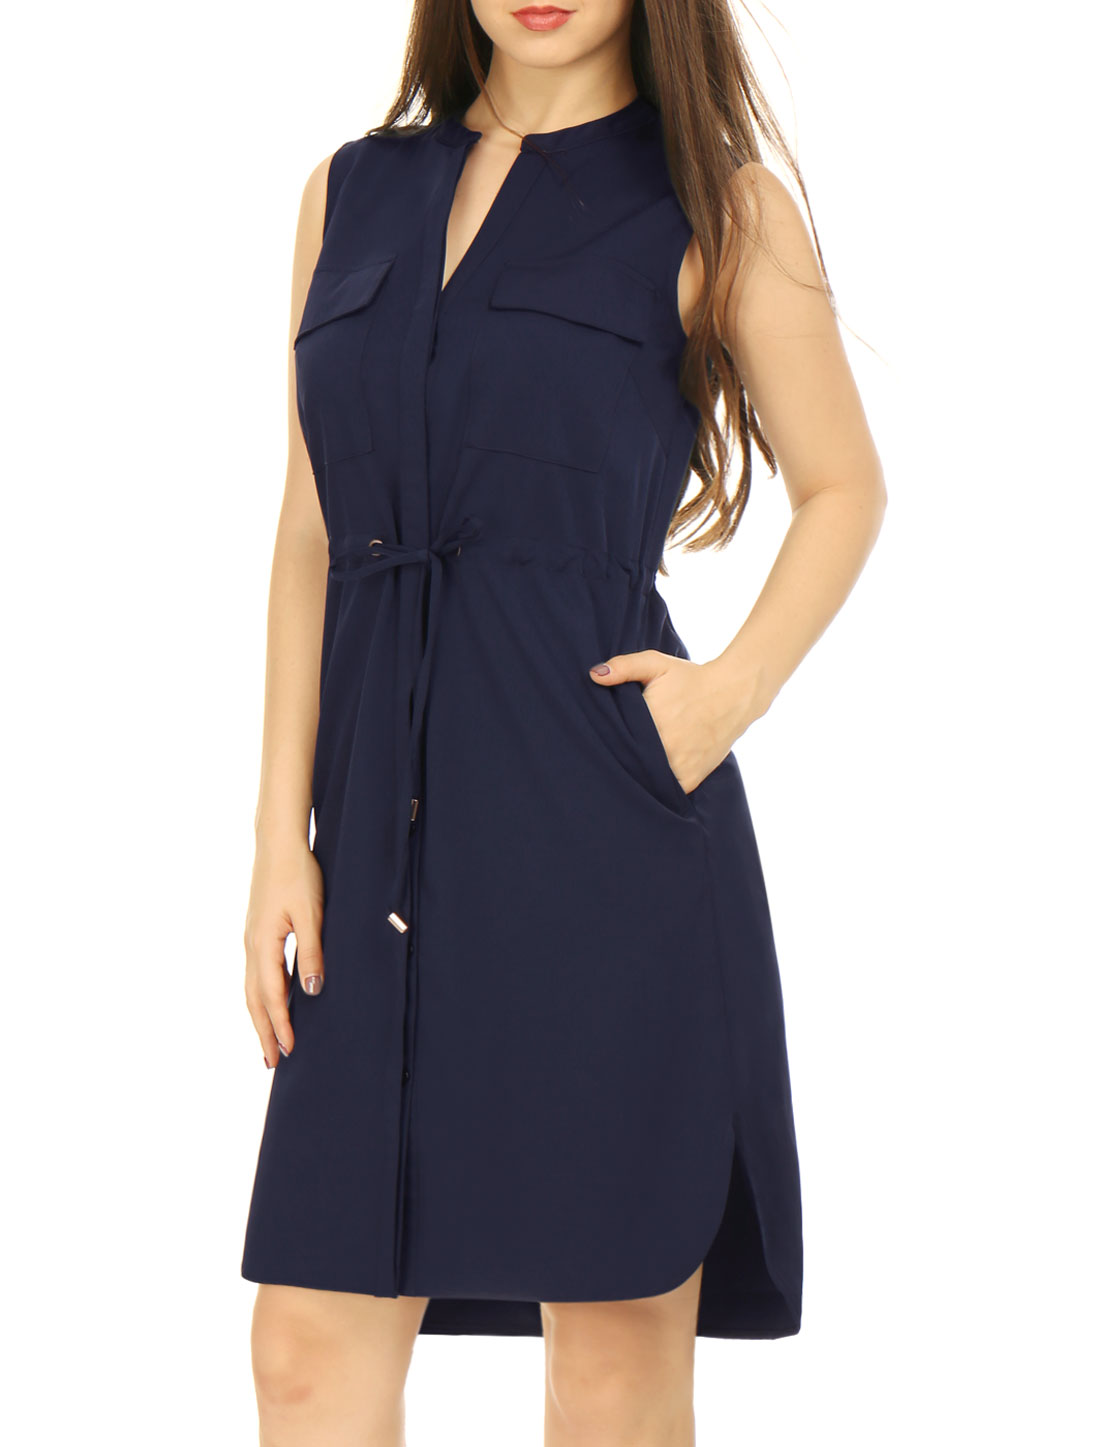 Woman Drawstring Waist V Neck Sleeveless Unlined Shirt Dress Navy Blue S